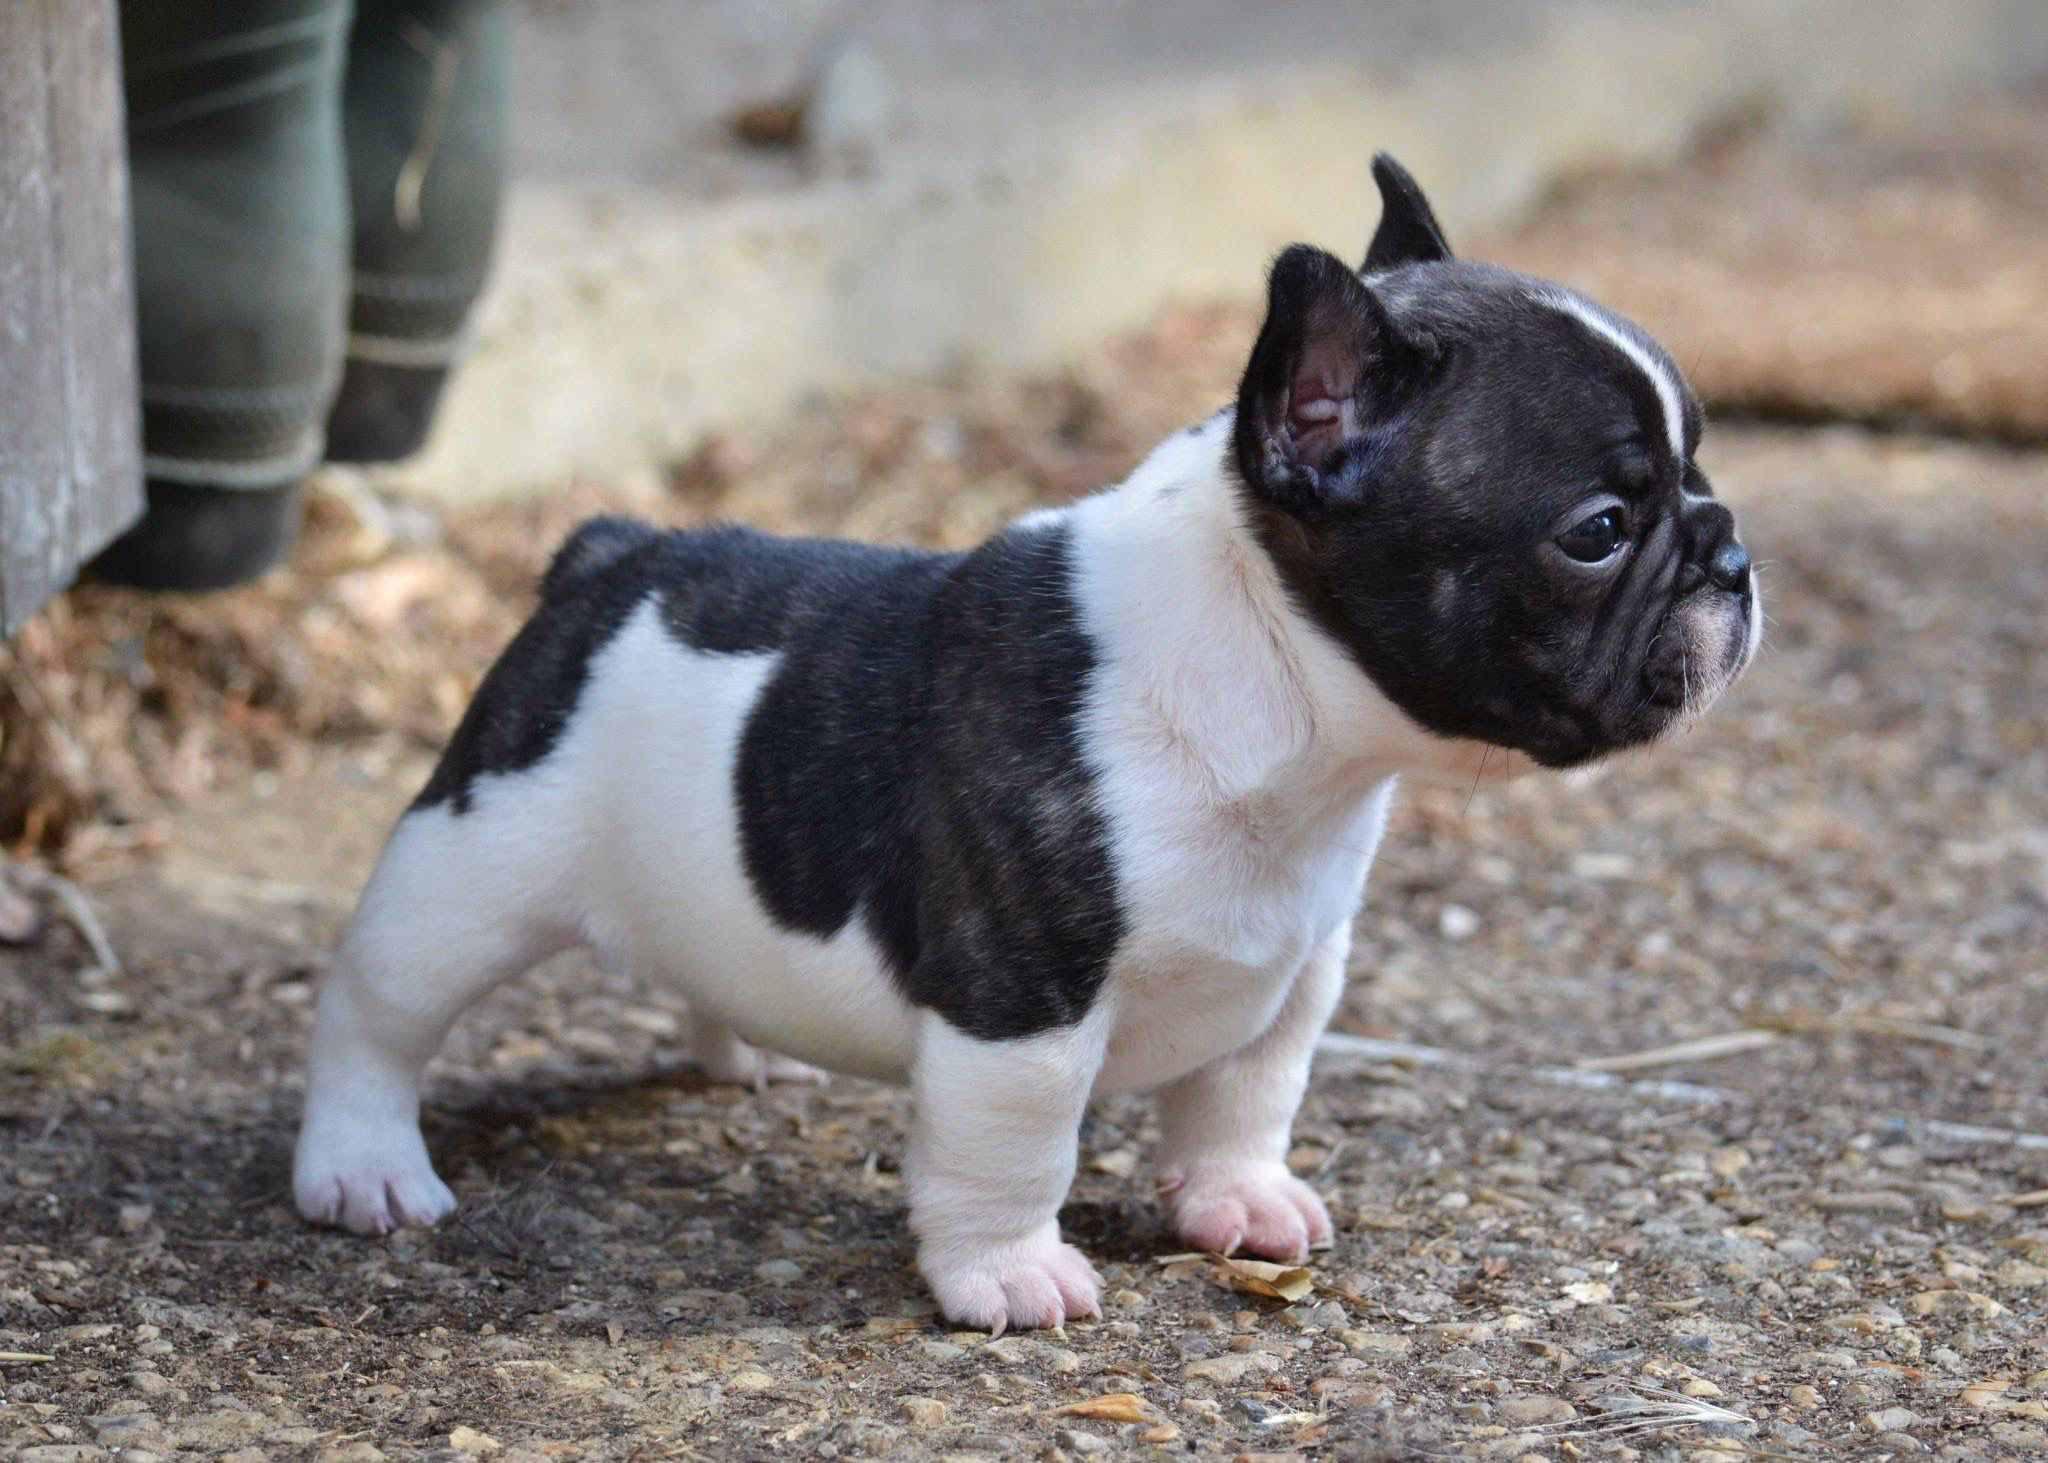 Awe Mini French Bulldog Puppy Cuccioli Di Bulldog Cani E